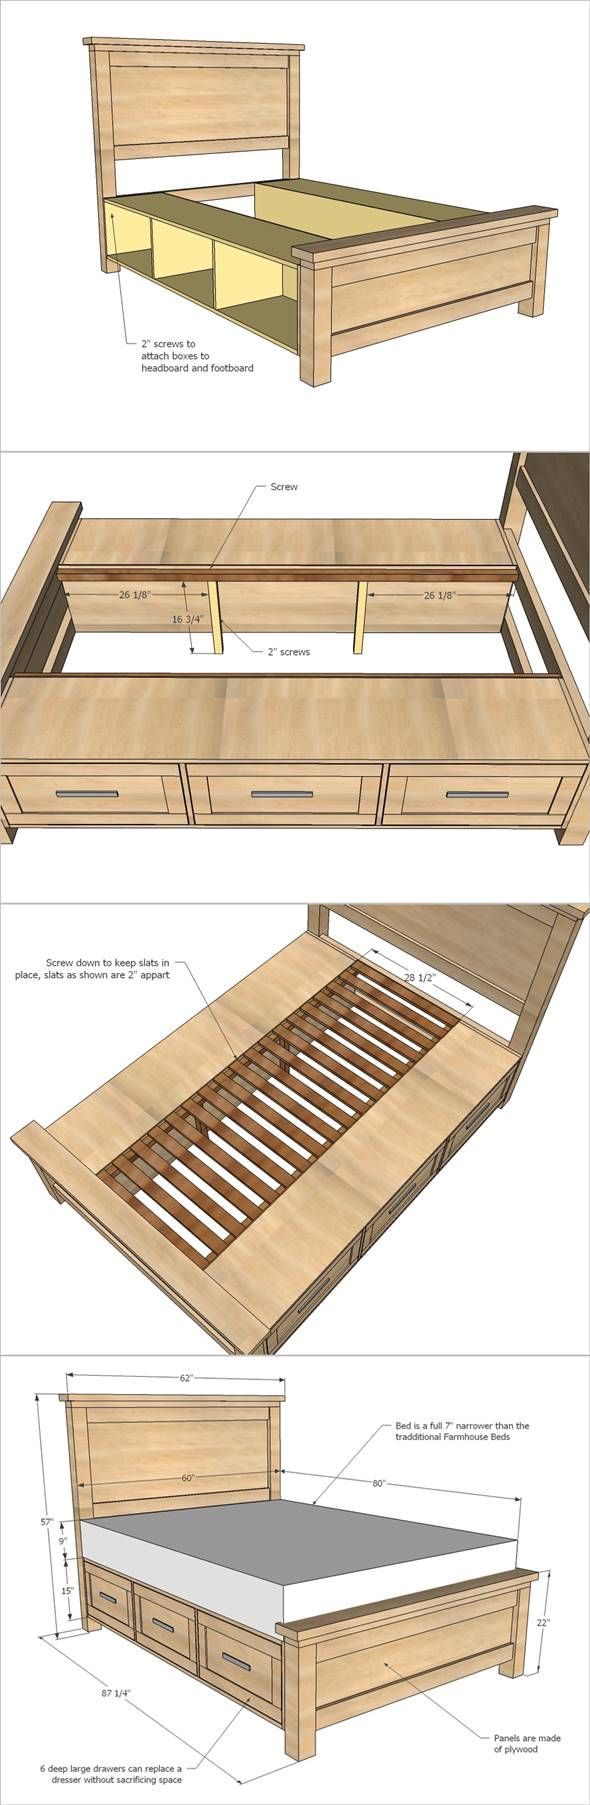 Bed frame with storage - Creative Ideas How To Build A Farmhouse Storage Bed With Drawers